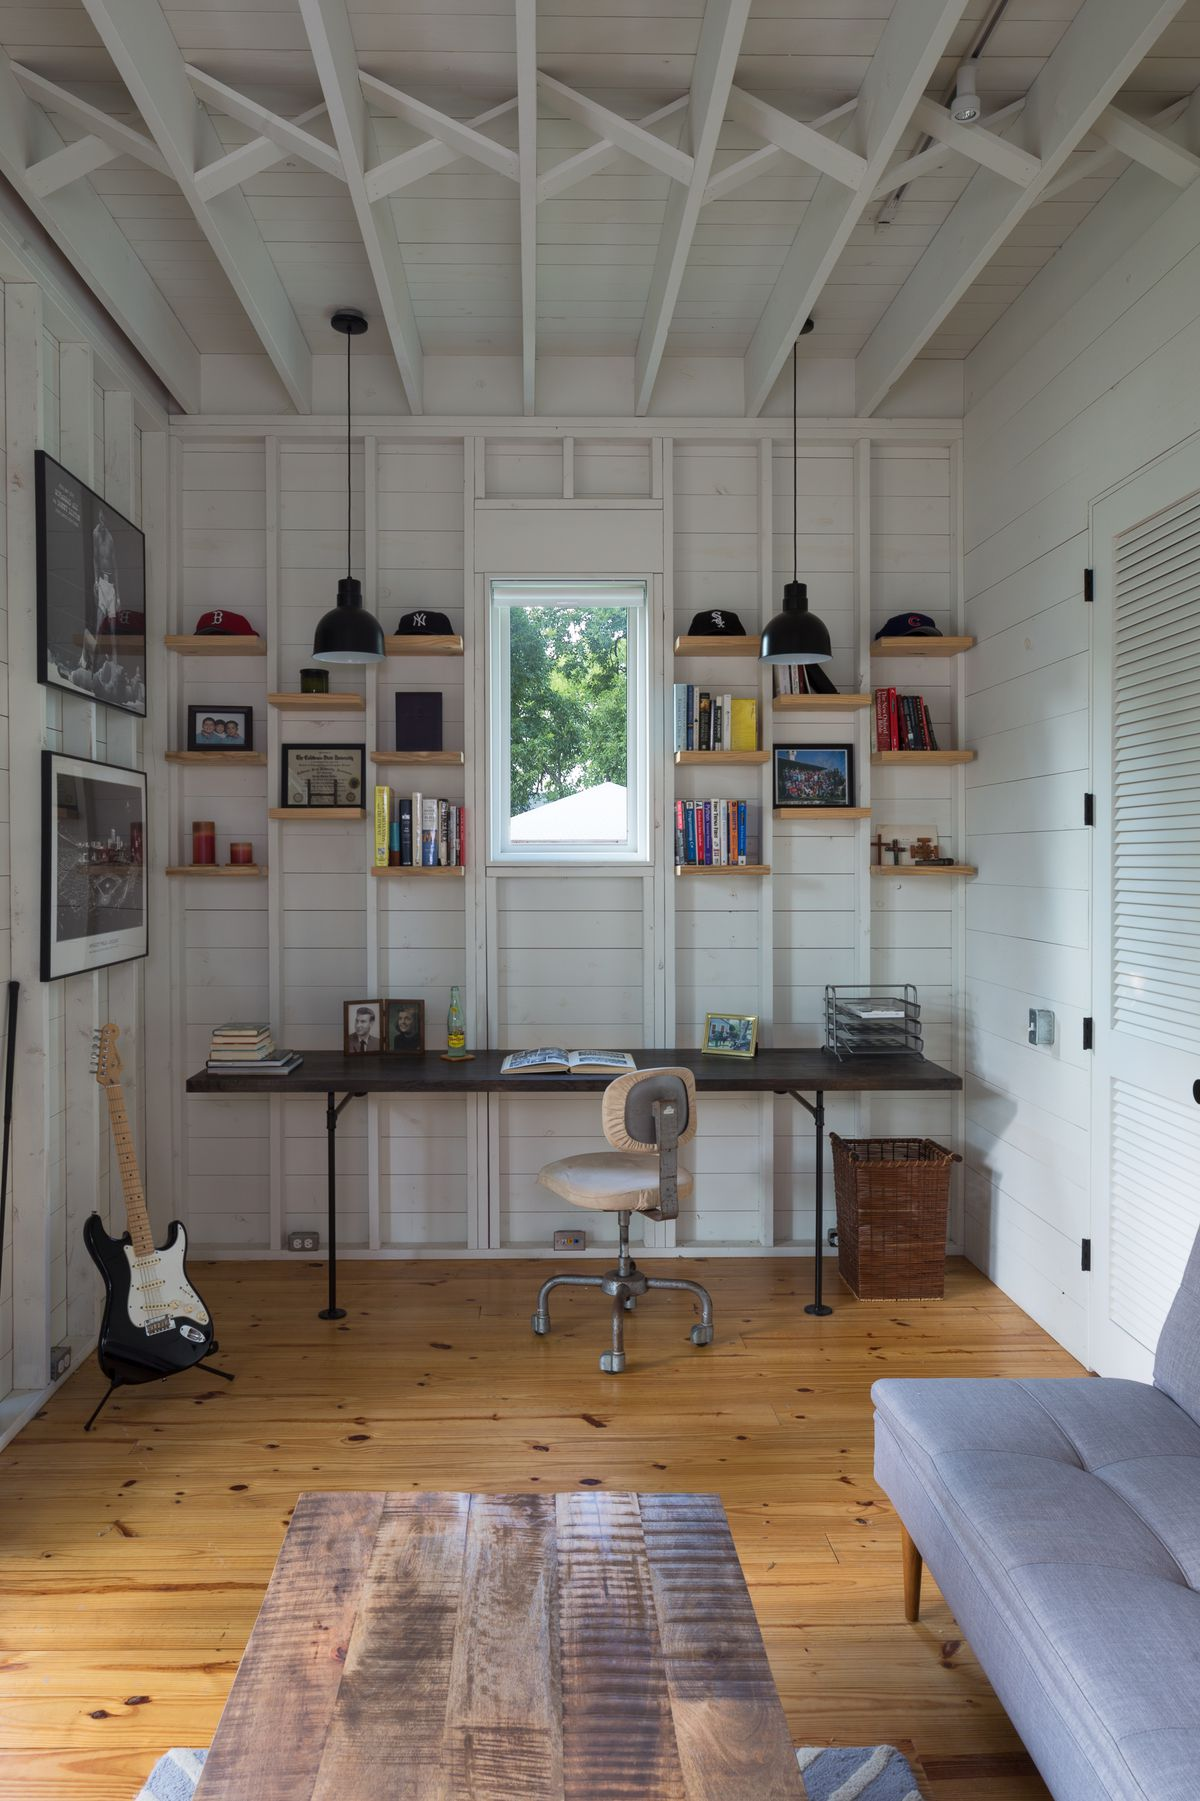 small study/lounge area in cottage-style room with desk, couch, coffee table, guitar